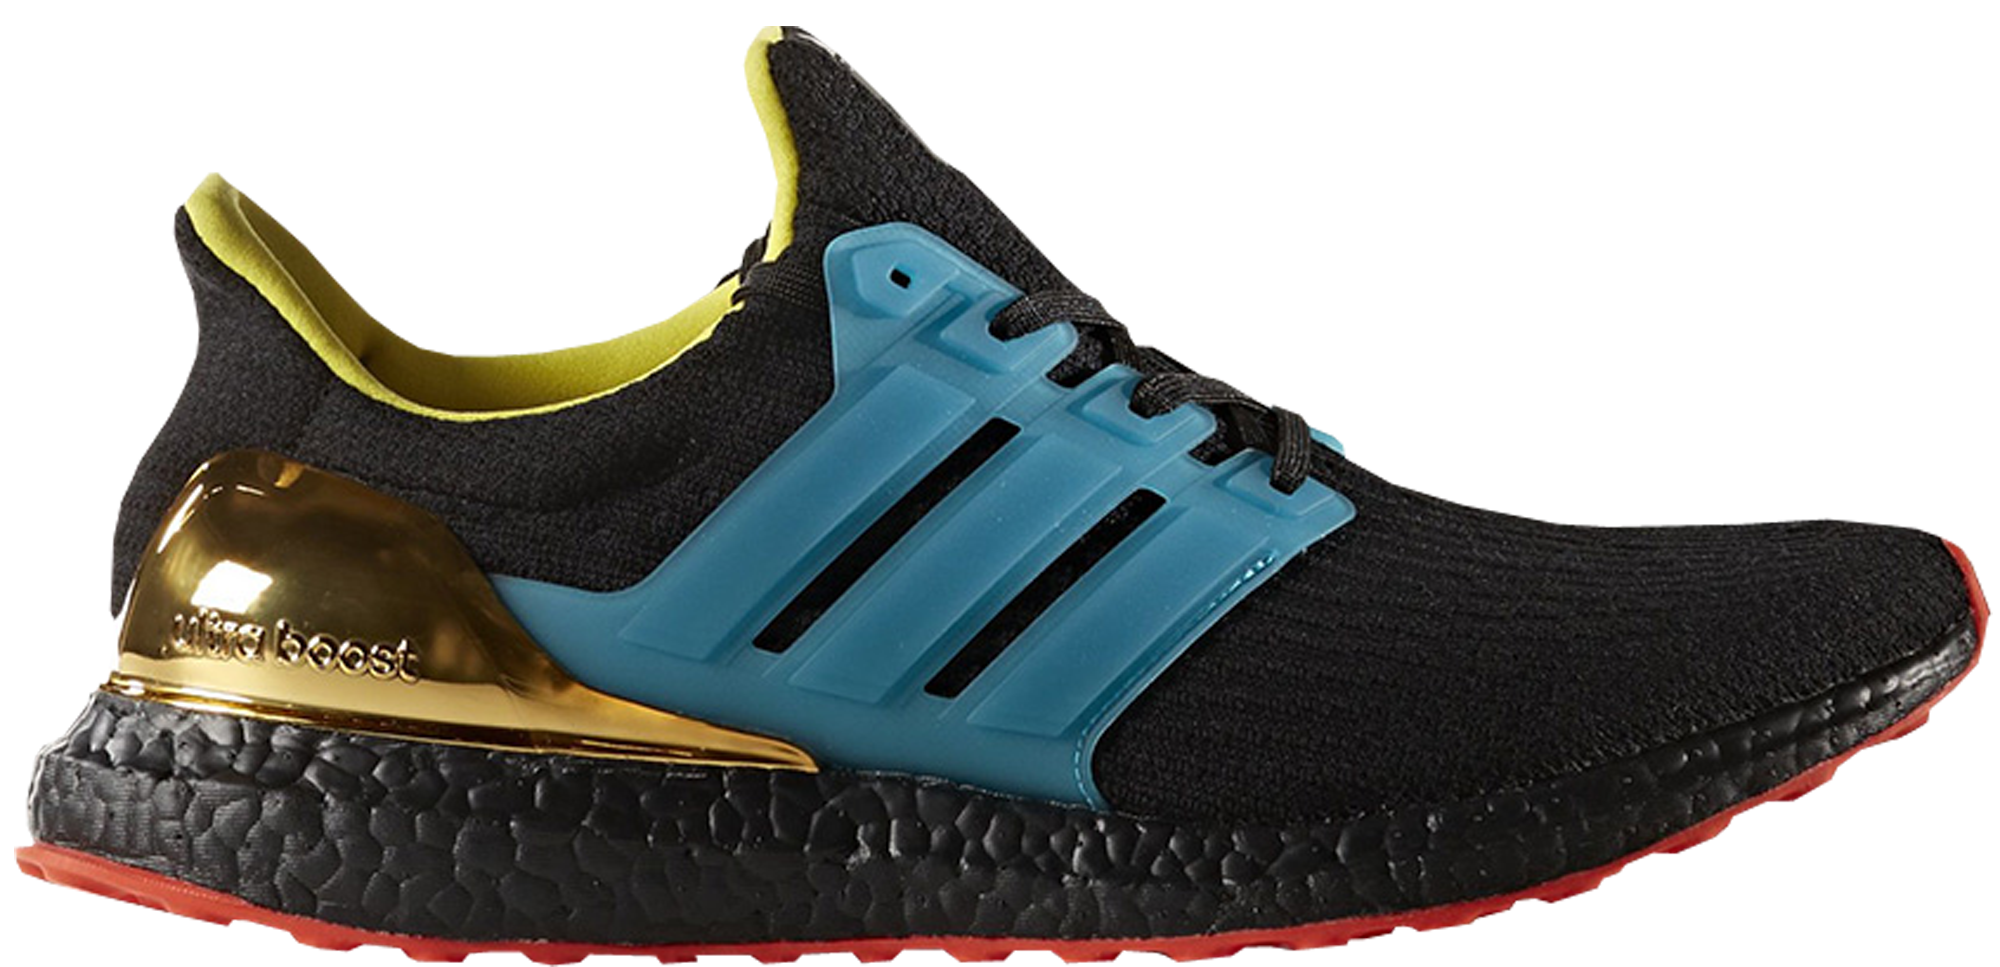 6d2f2ae2 adidas Ultra Boost Kolor Black - StockX News